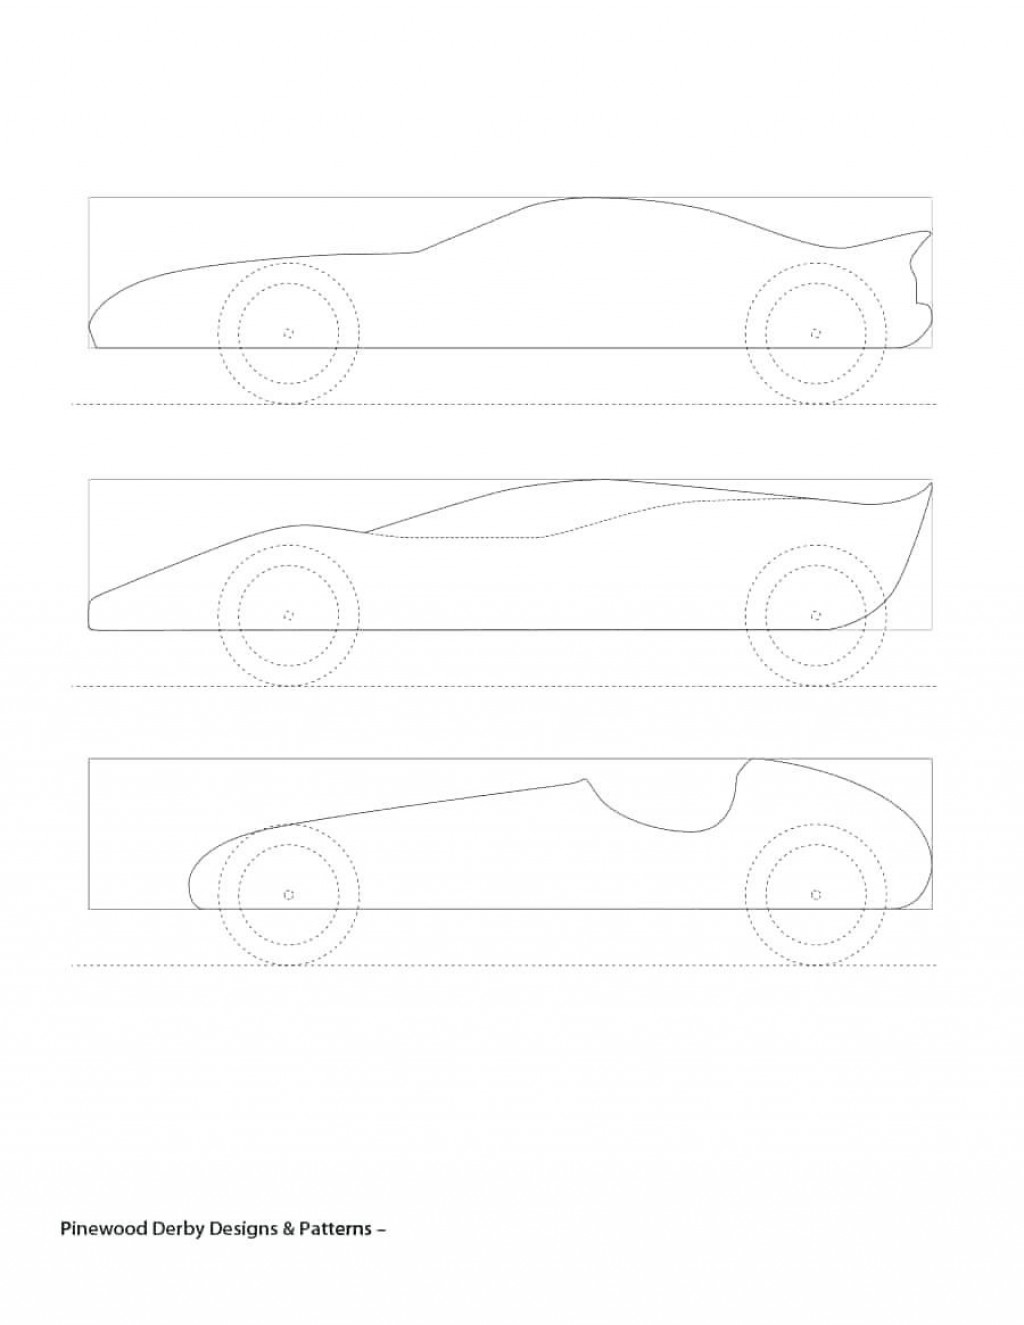 006 Amazing Fastest Pinewood Derby Car Template Sample  Templates World DesignLarge